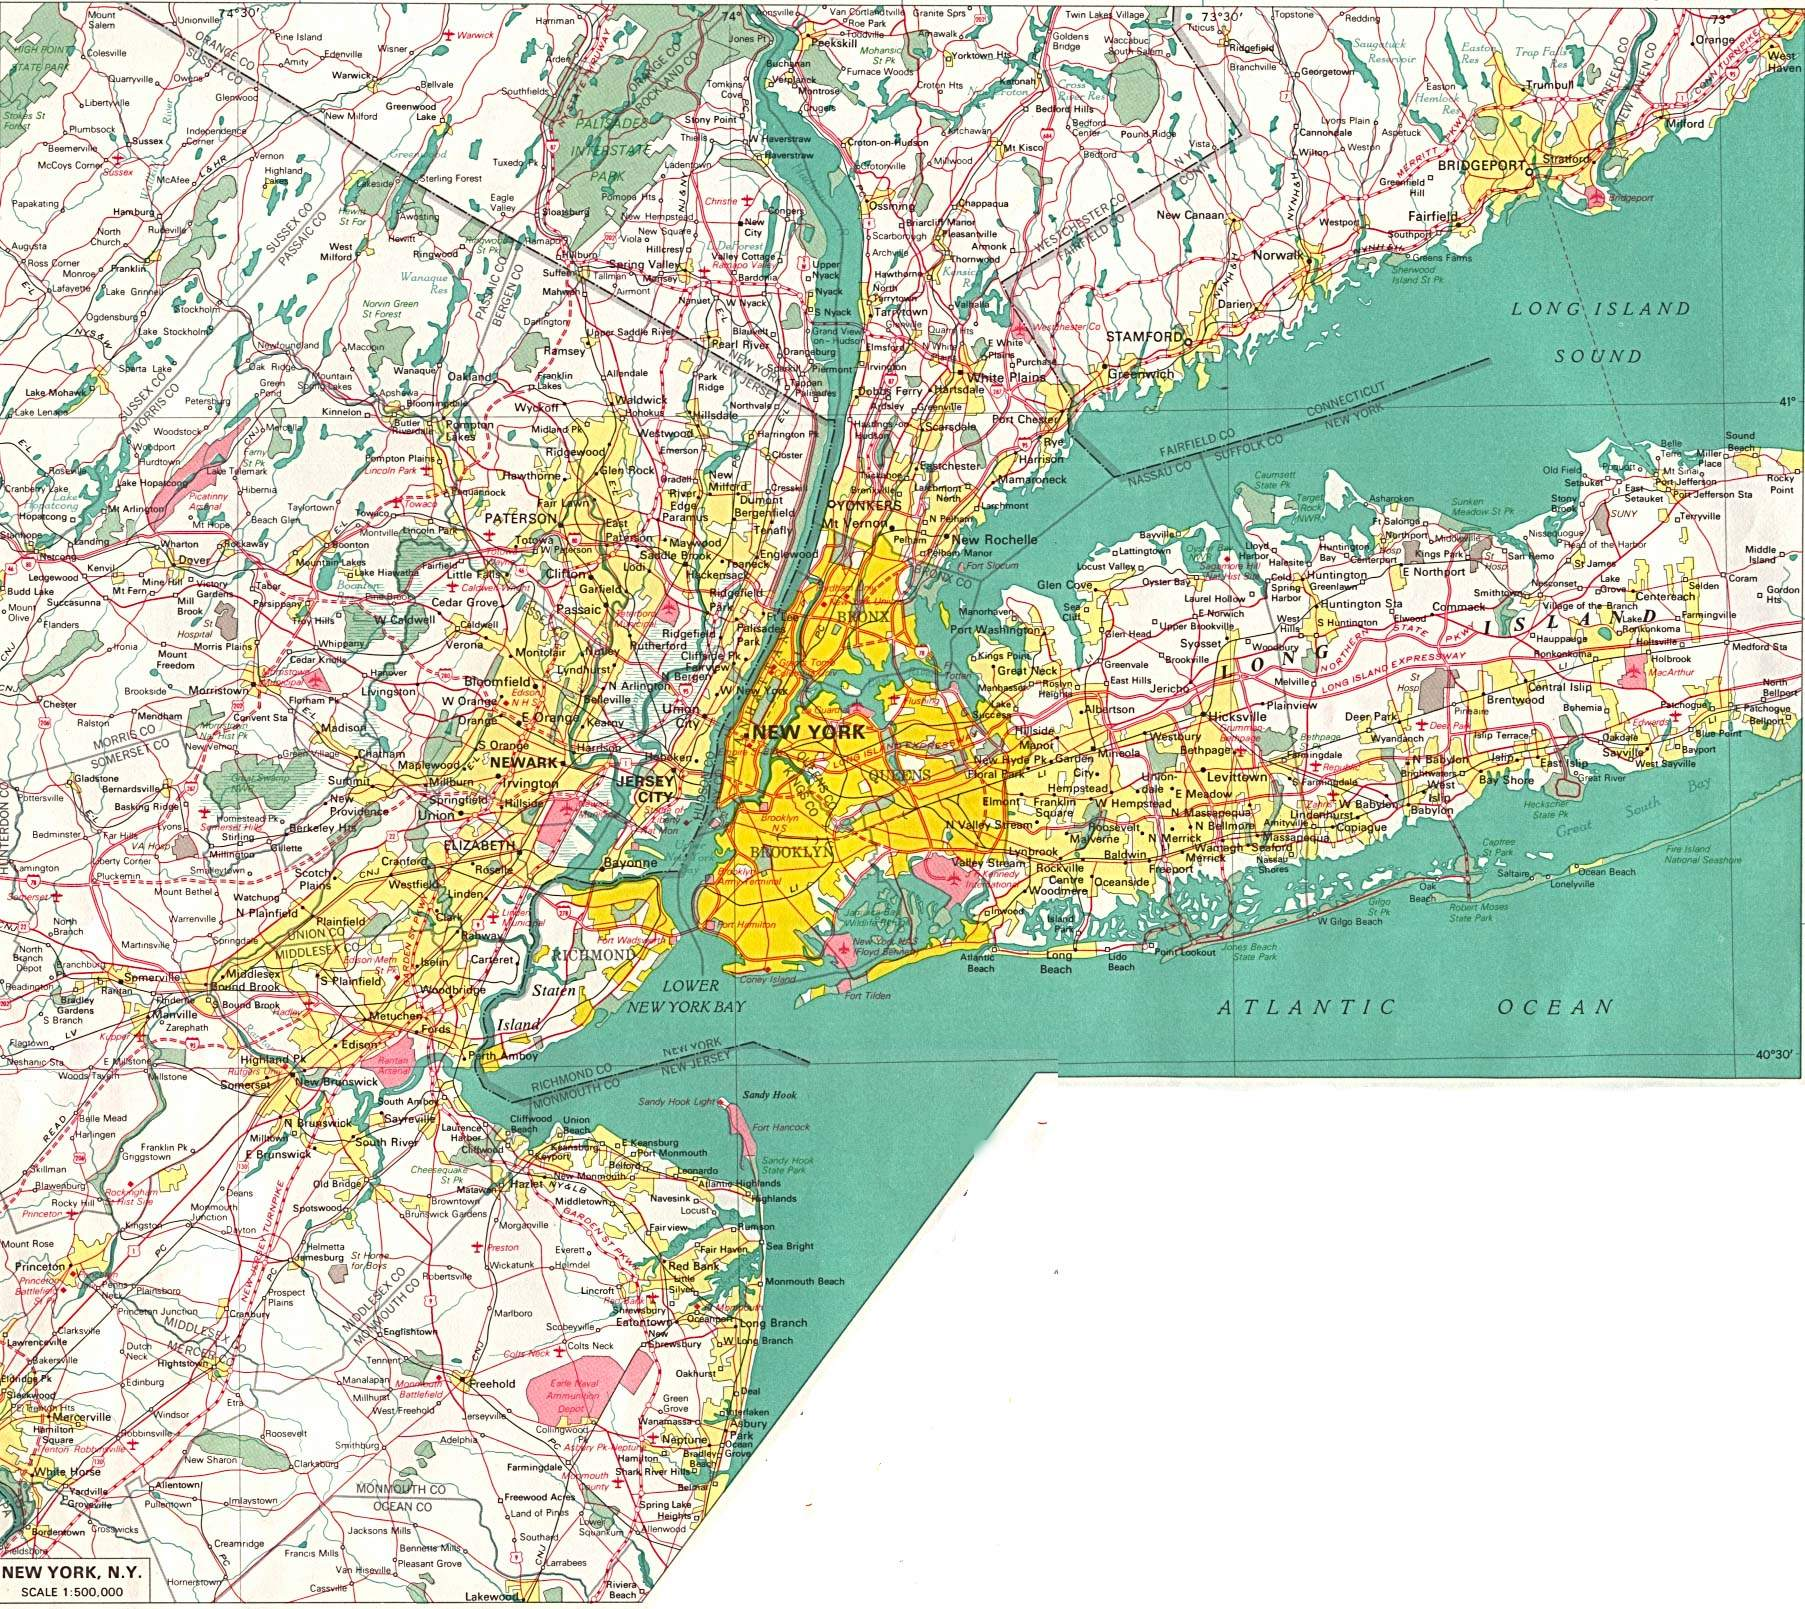 Large New York Maps For Free Download And Print High Resolution And Detailed Maps